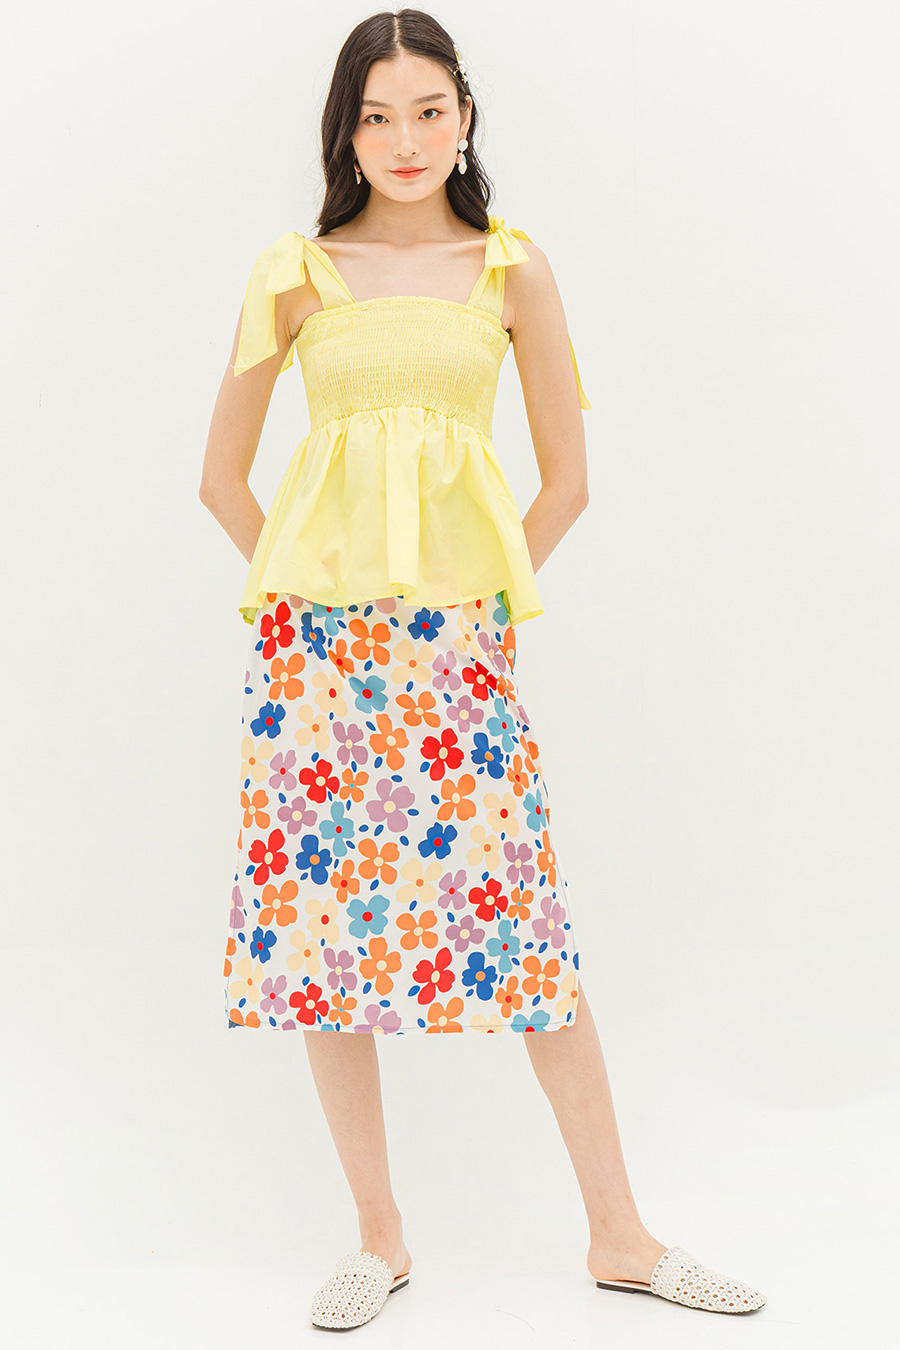 *BO* ETTA SKIRT - POPPY